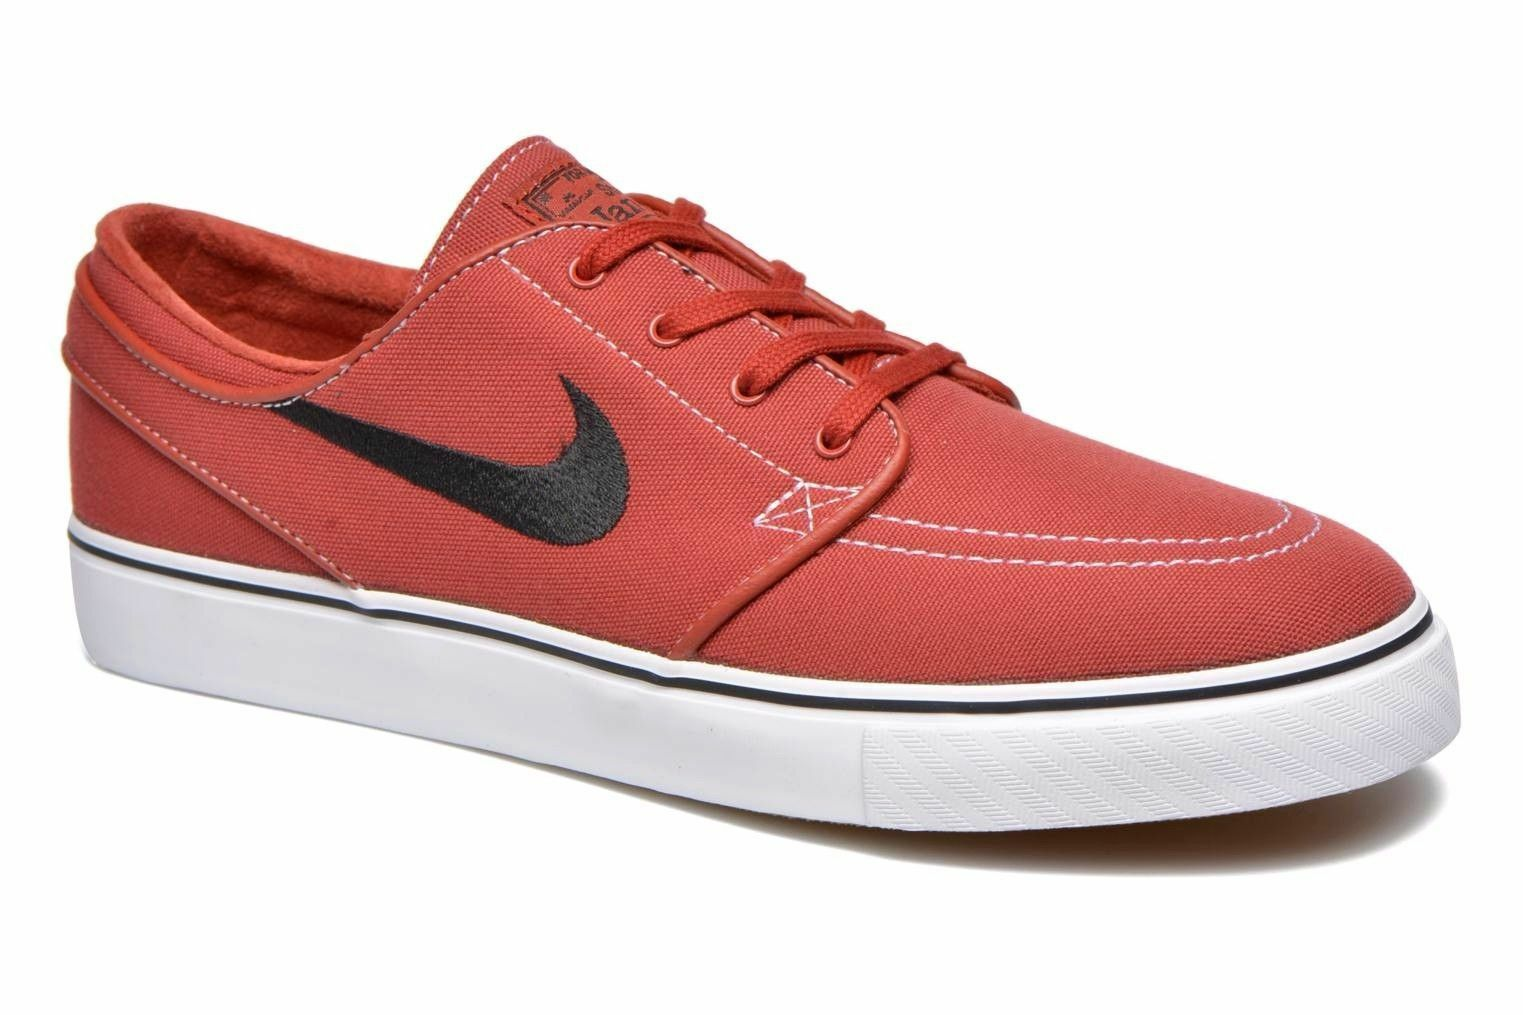 Special limited time NIKE SB ZOOM STEFAN JANOSKI LOW SNEAKERS RED MEN SHOES 615957-600 SIZE 10 NEW